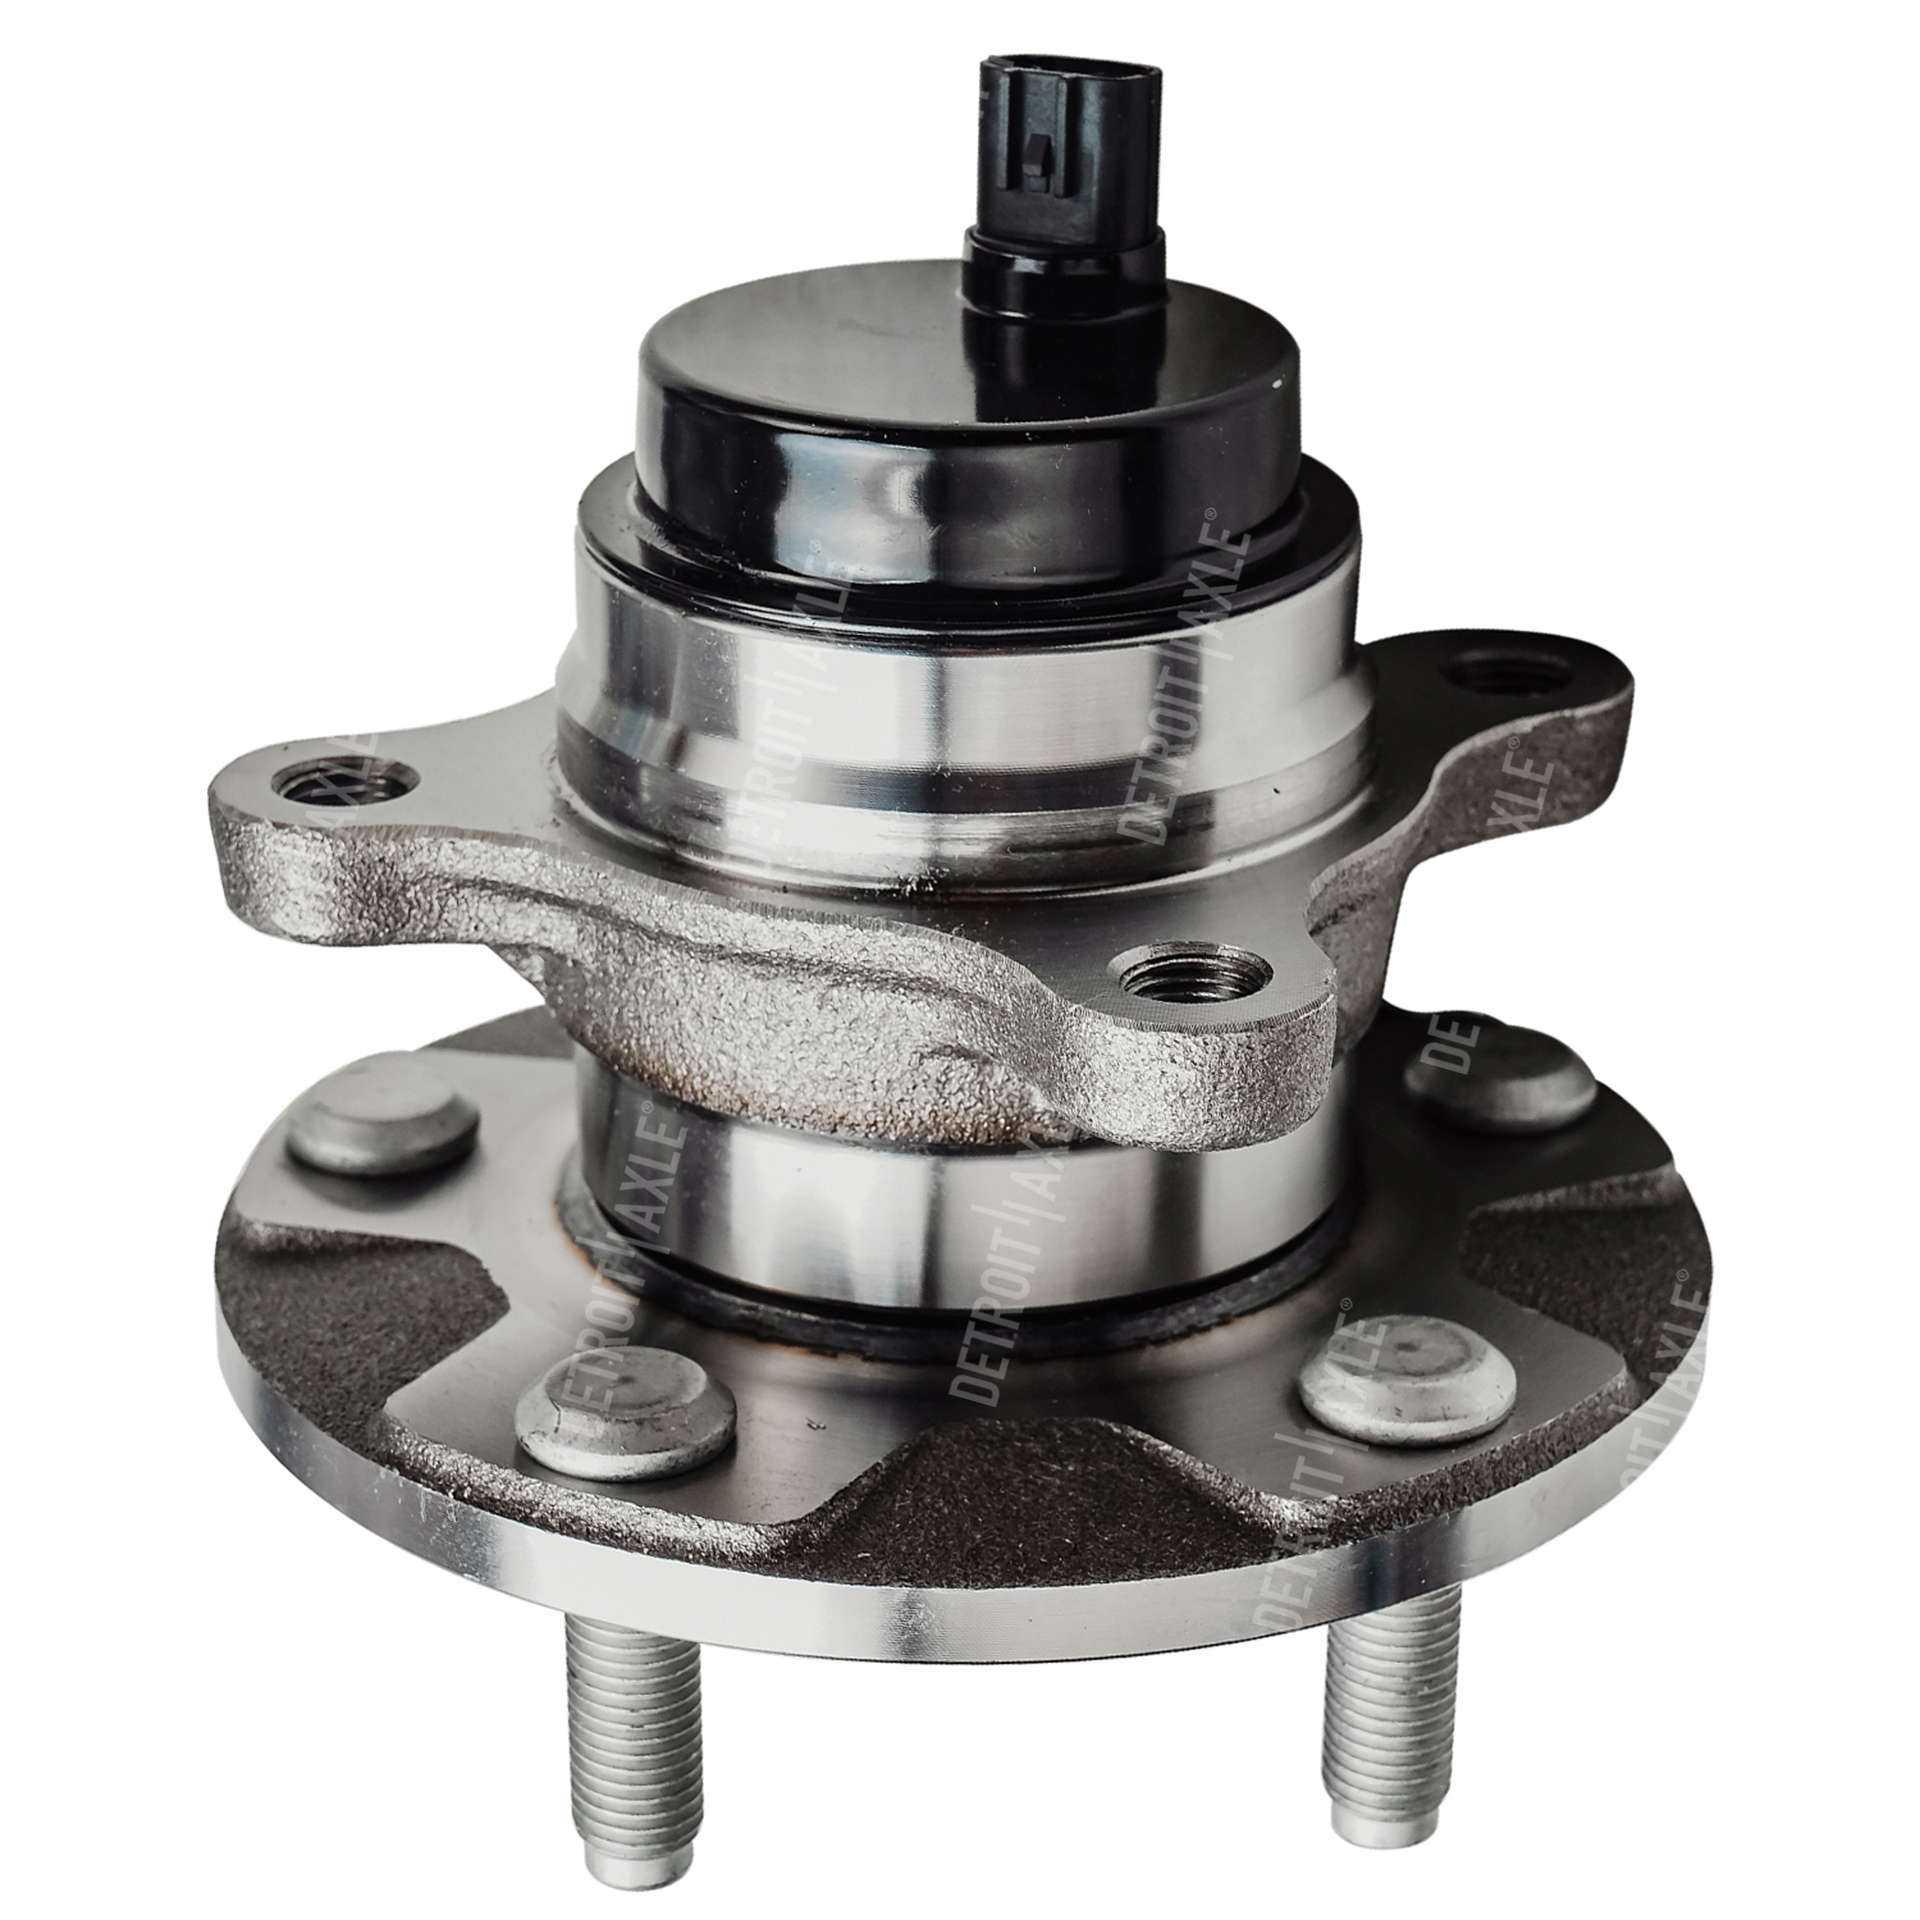 Front Wheel Hub and Bearing Assembly - Driver Side fits RWD Only